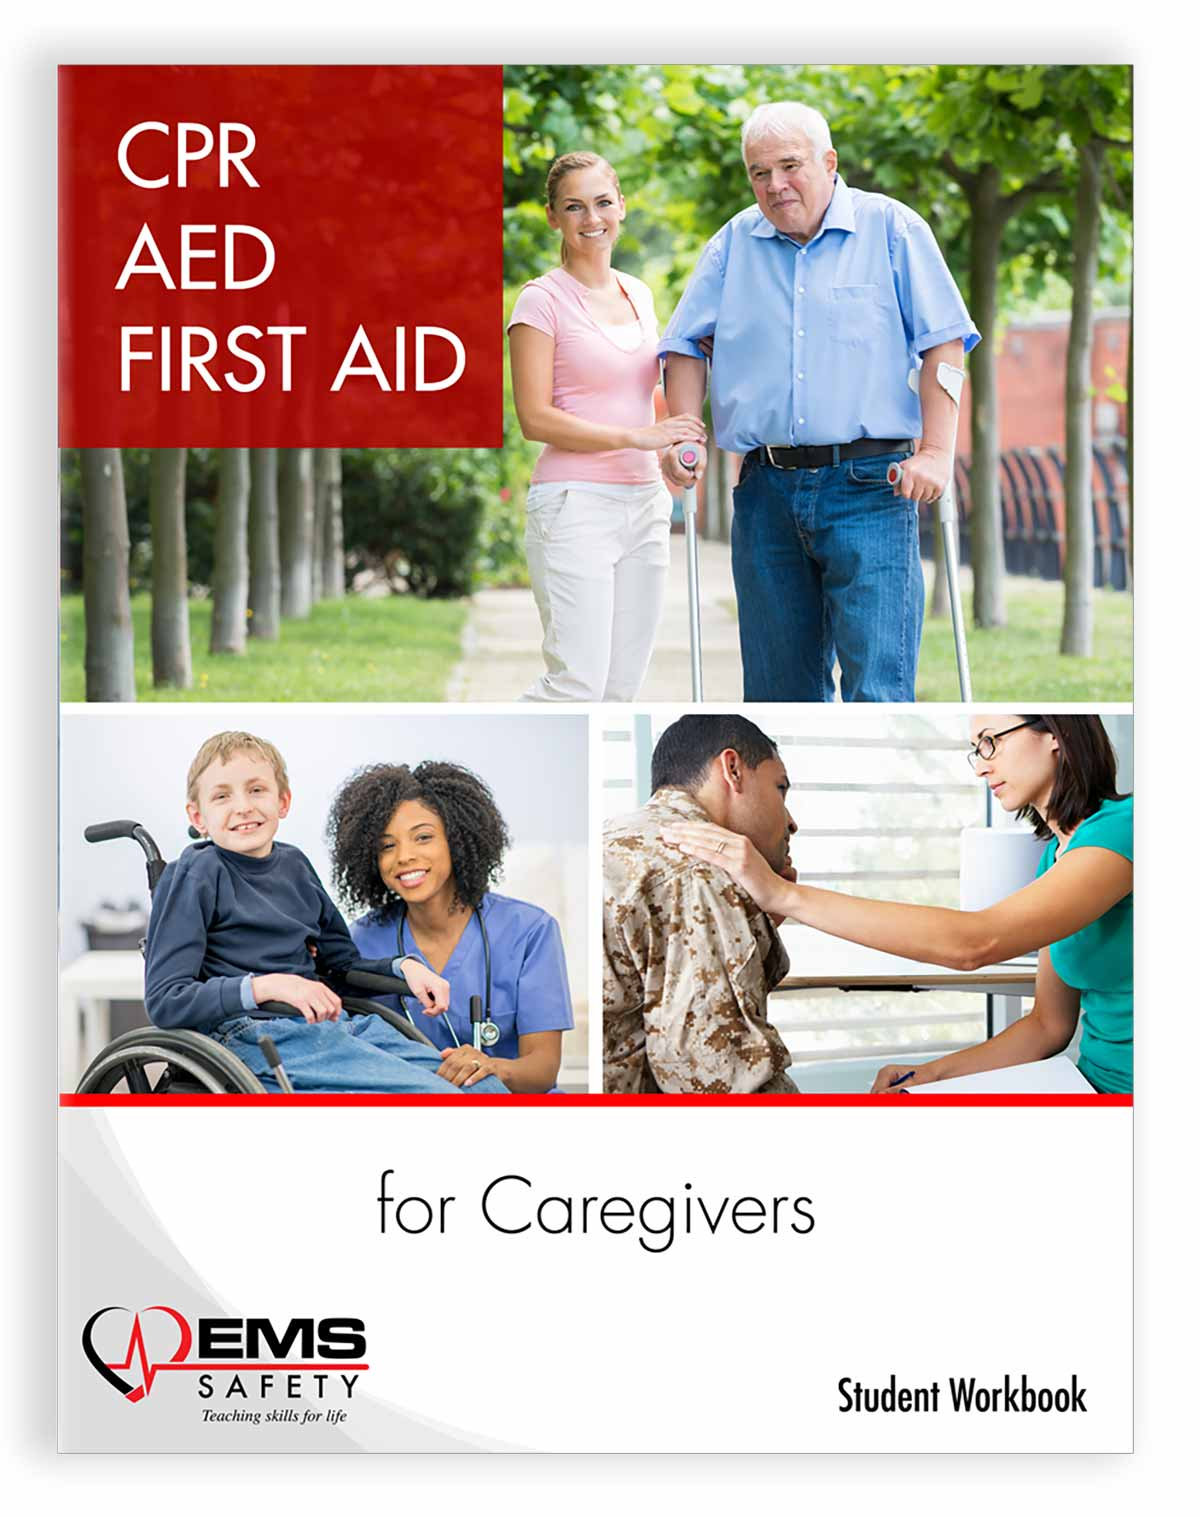 CPR, AED and First Aid for Caregivers Workbook Cover